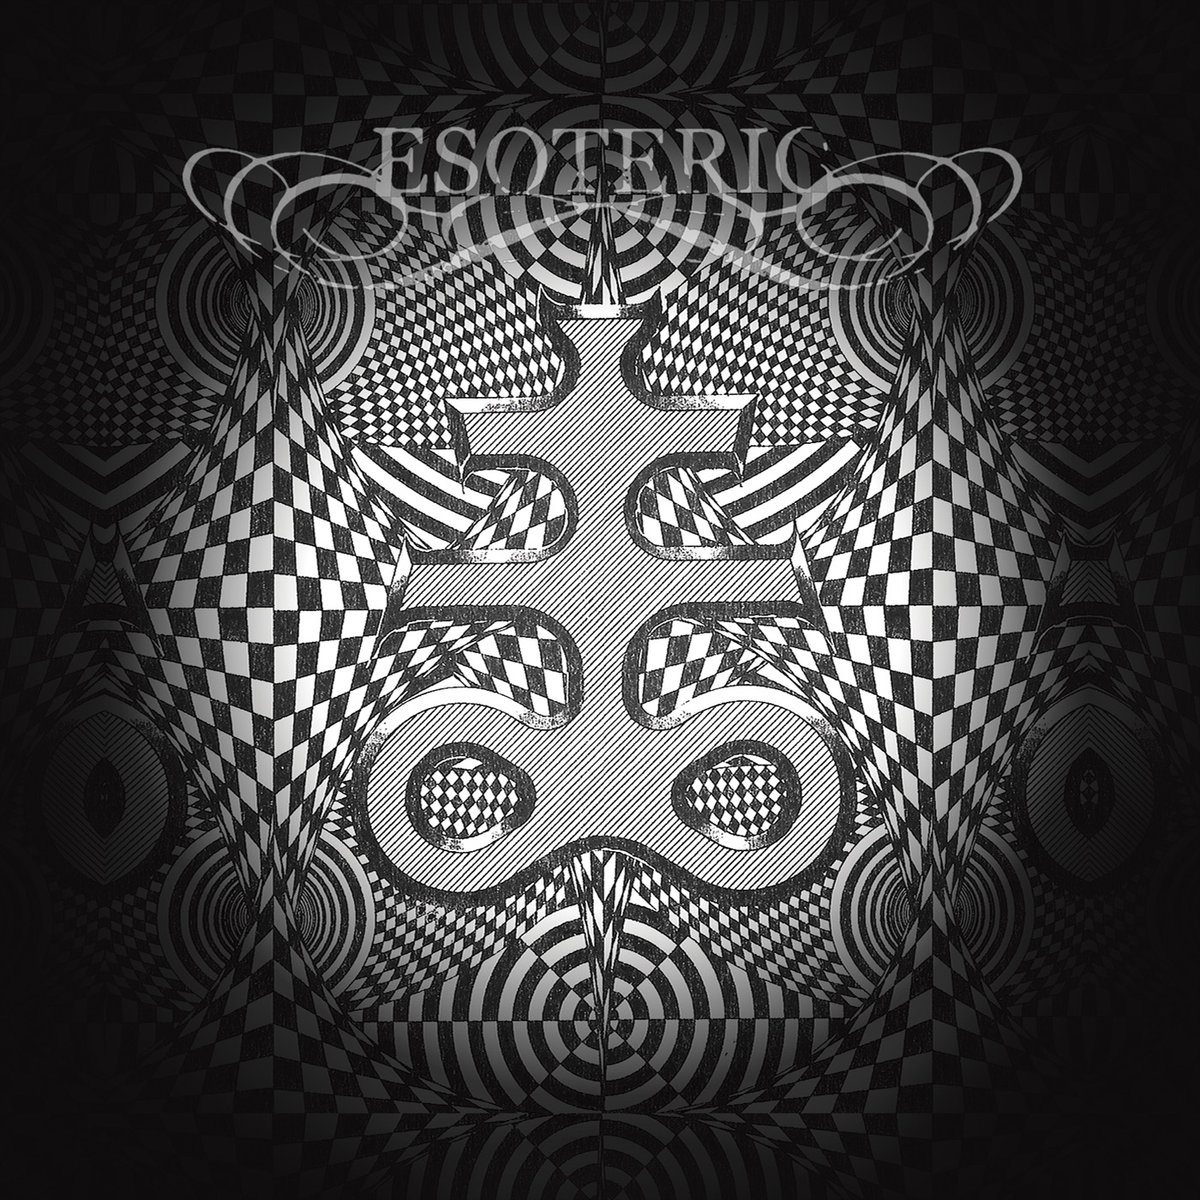 ESOTERIC - Esoteric Emotions